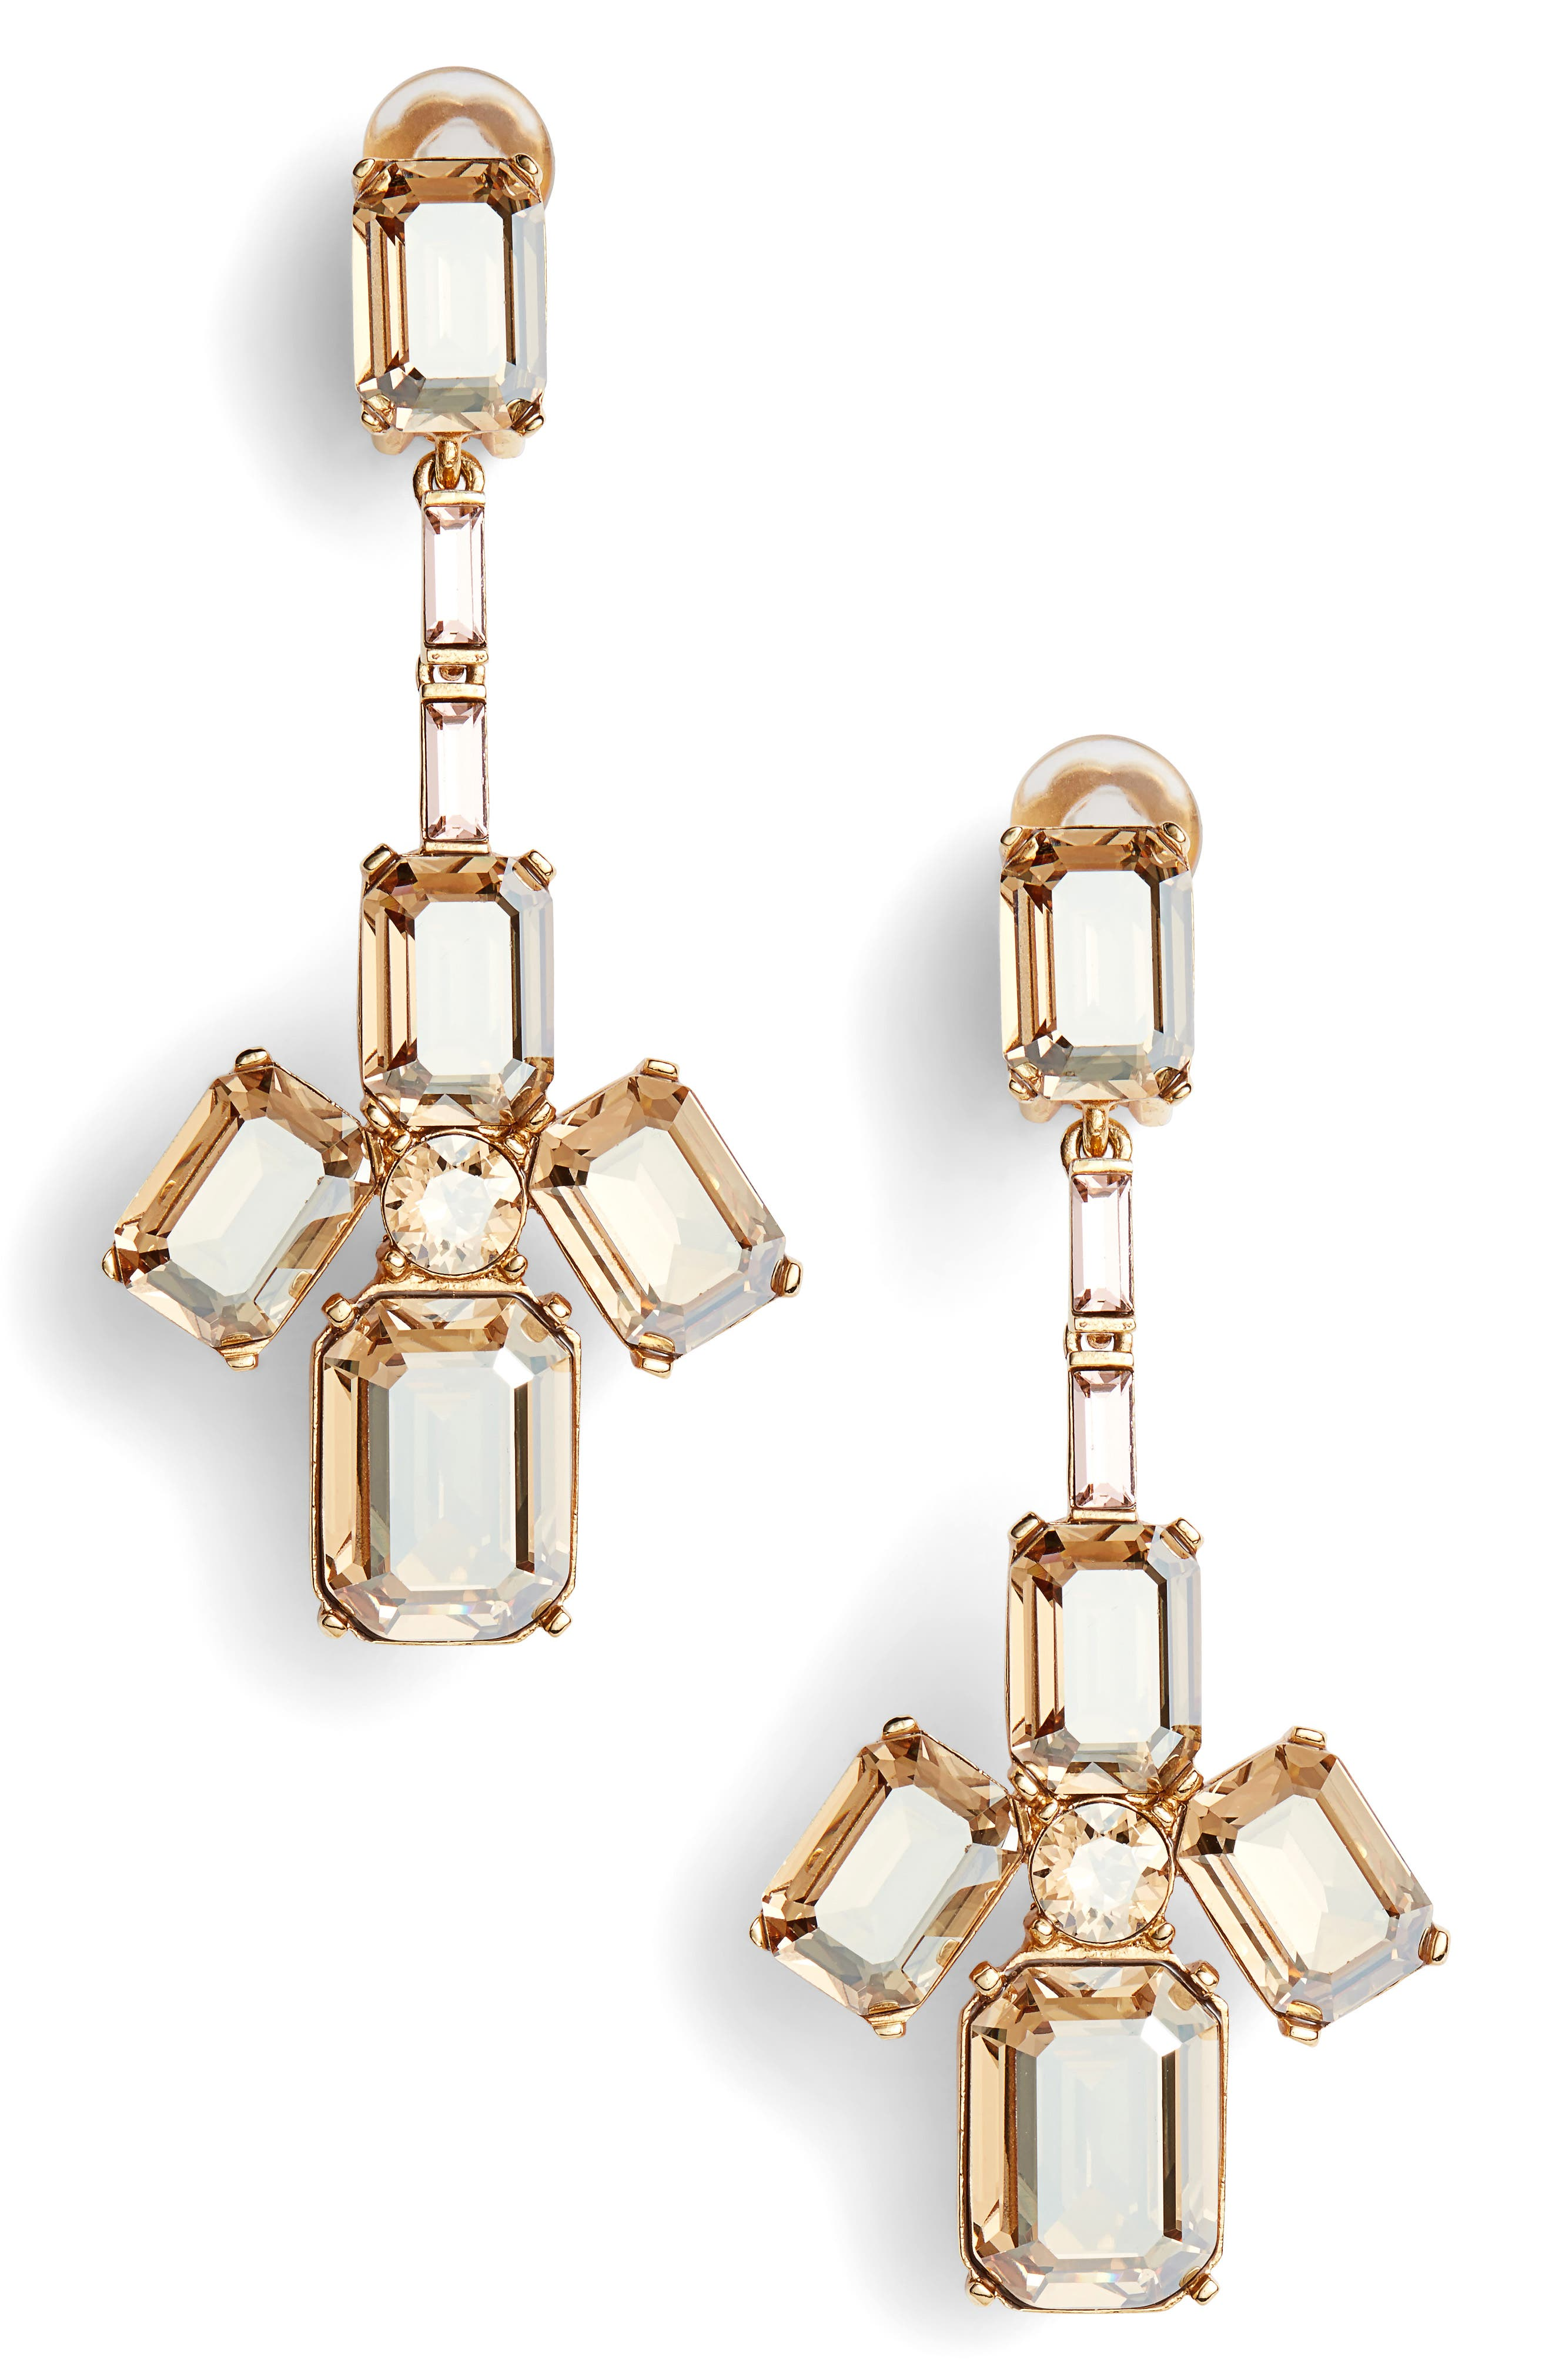 Tendril Crystal Clip Earrings,                             Main thumbnail 1, color,                             Cry Gold Shadow